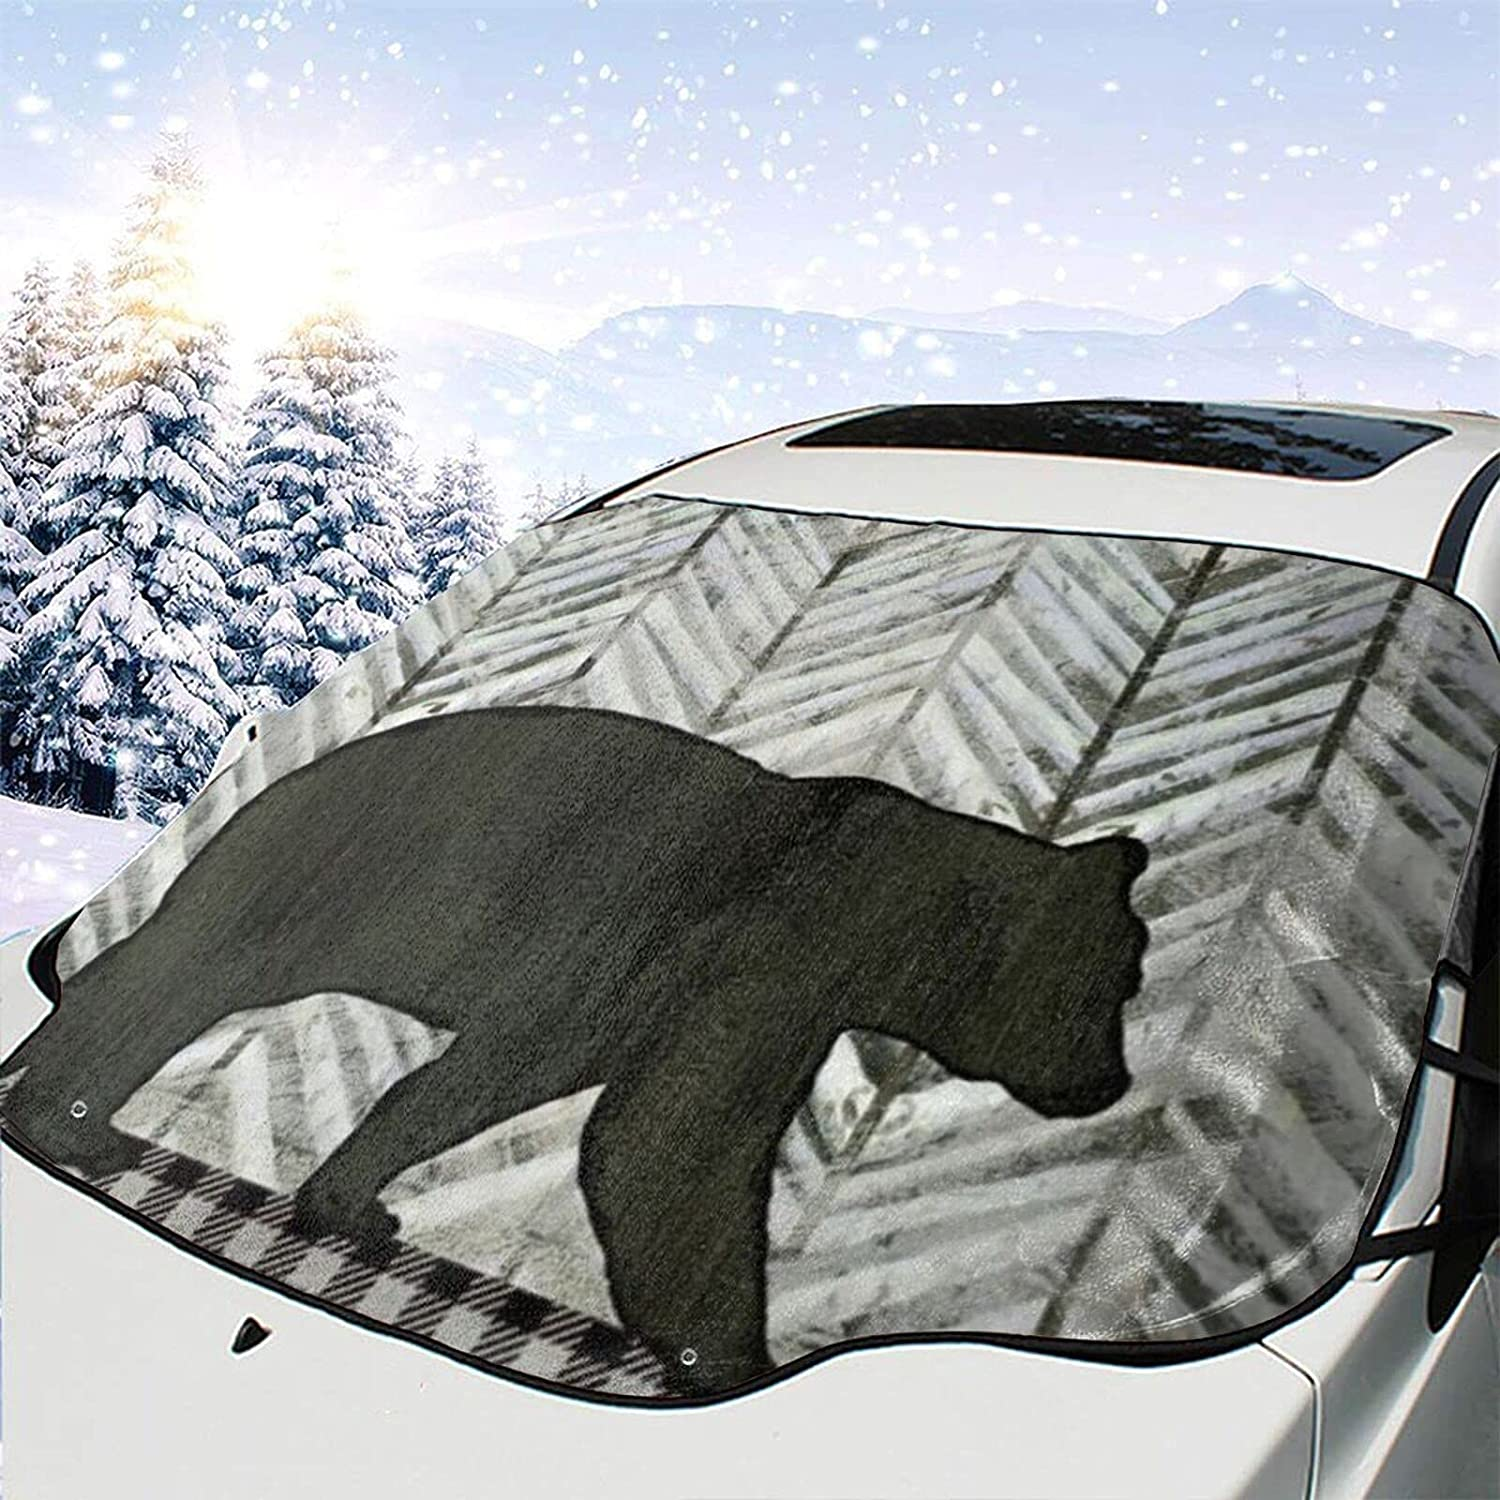 Car Front Window Shade Retro Rustic Black Import Forest Wint Plaid Bear Ranking TOP10